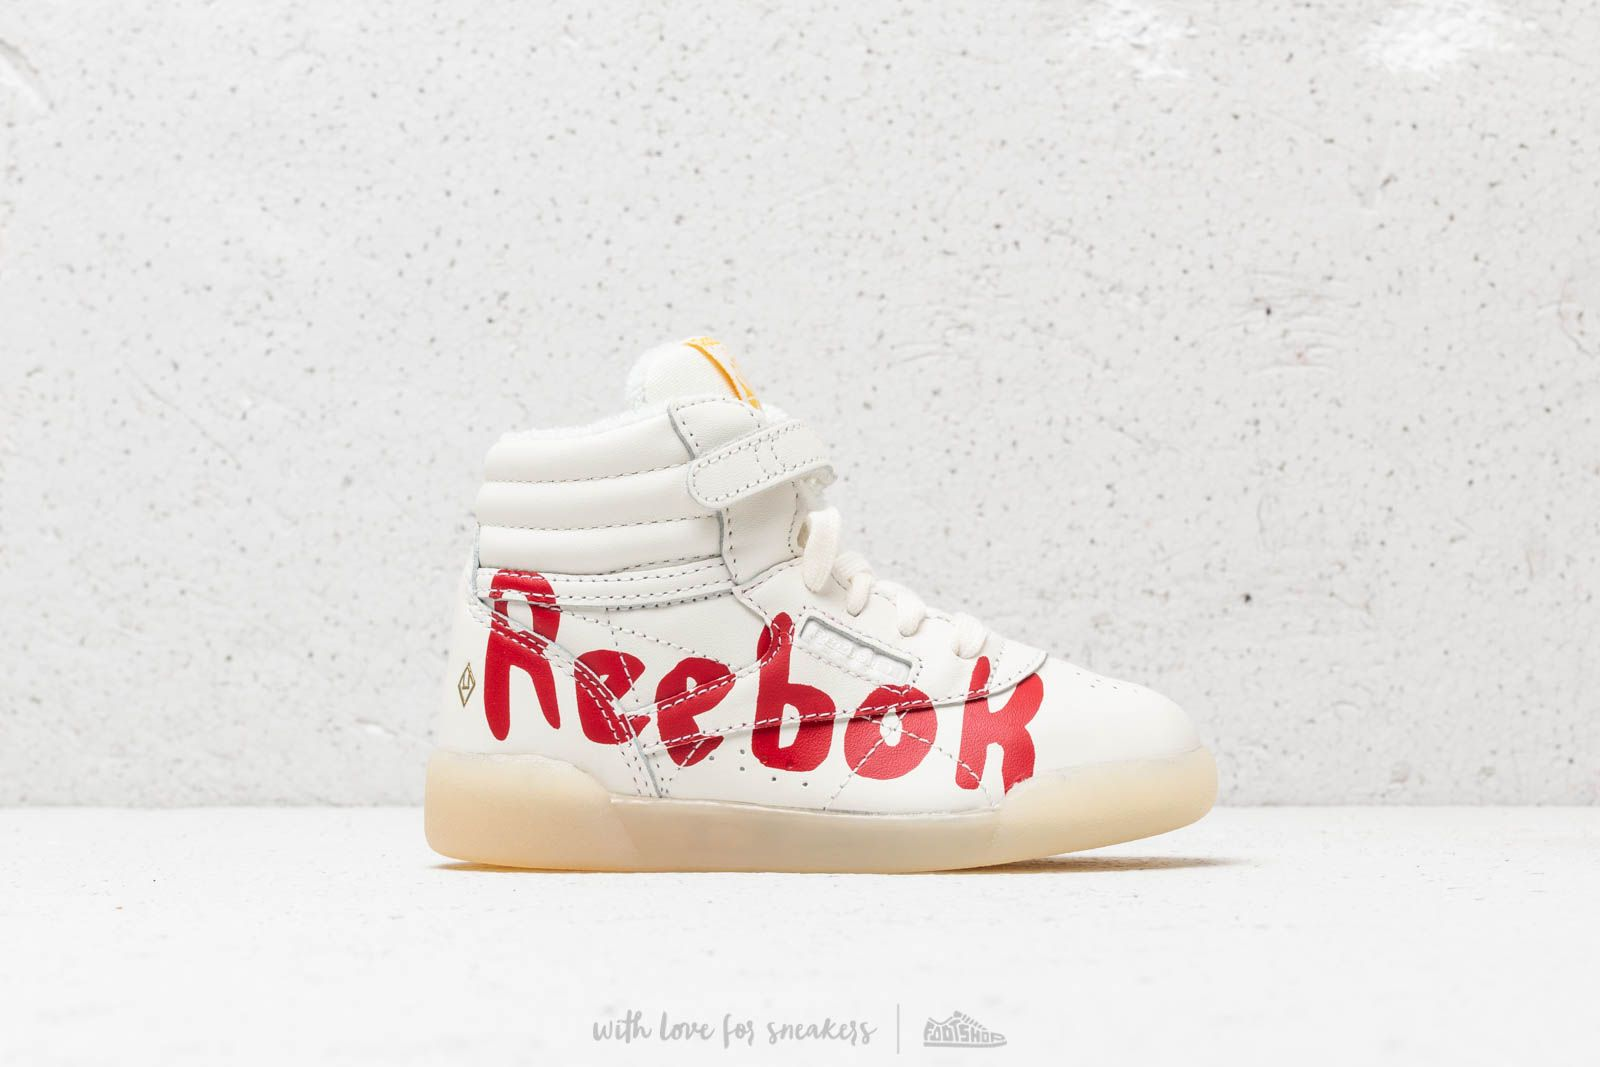 fdfb425f863 Reebok F S Hi Tao Graphic Pristine  Molten Lave  Freesla  Washed Yellow